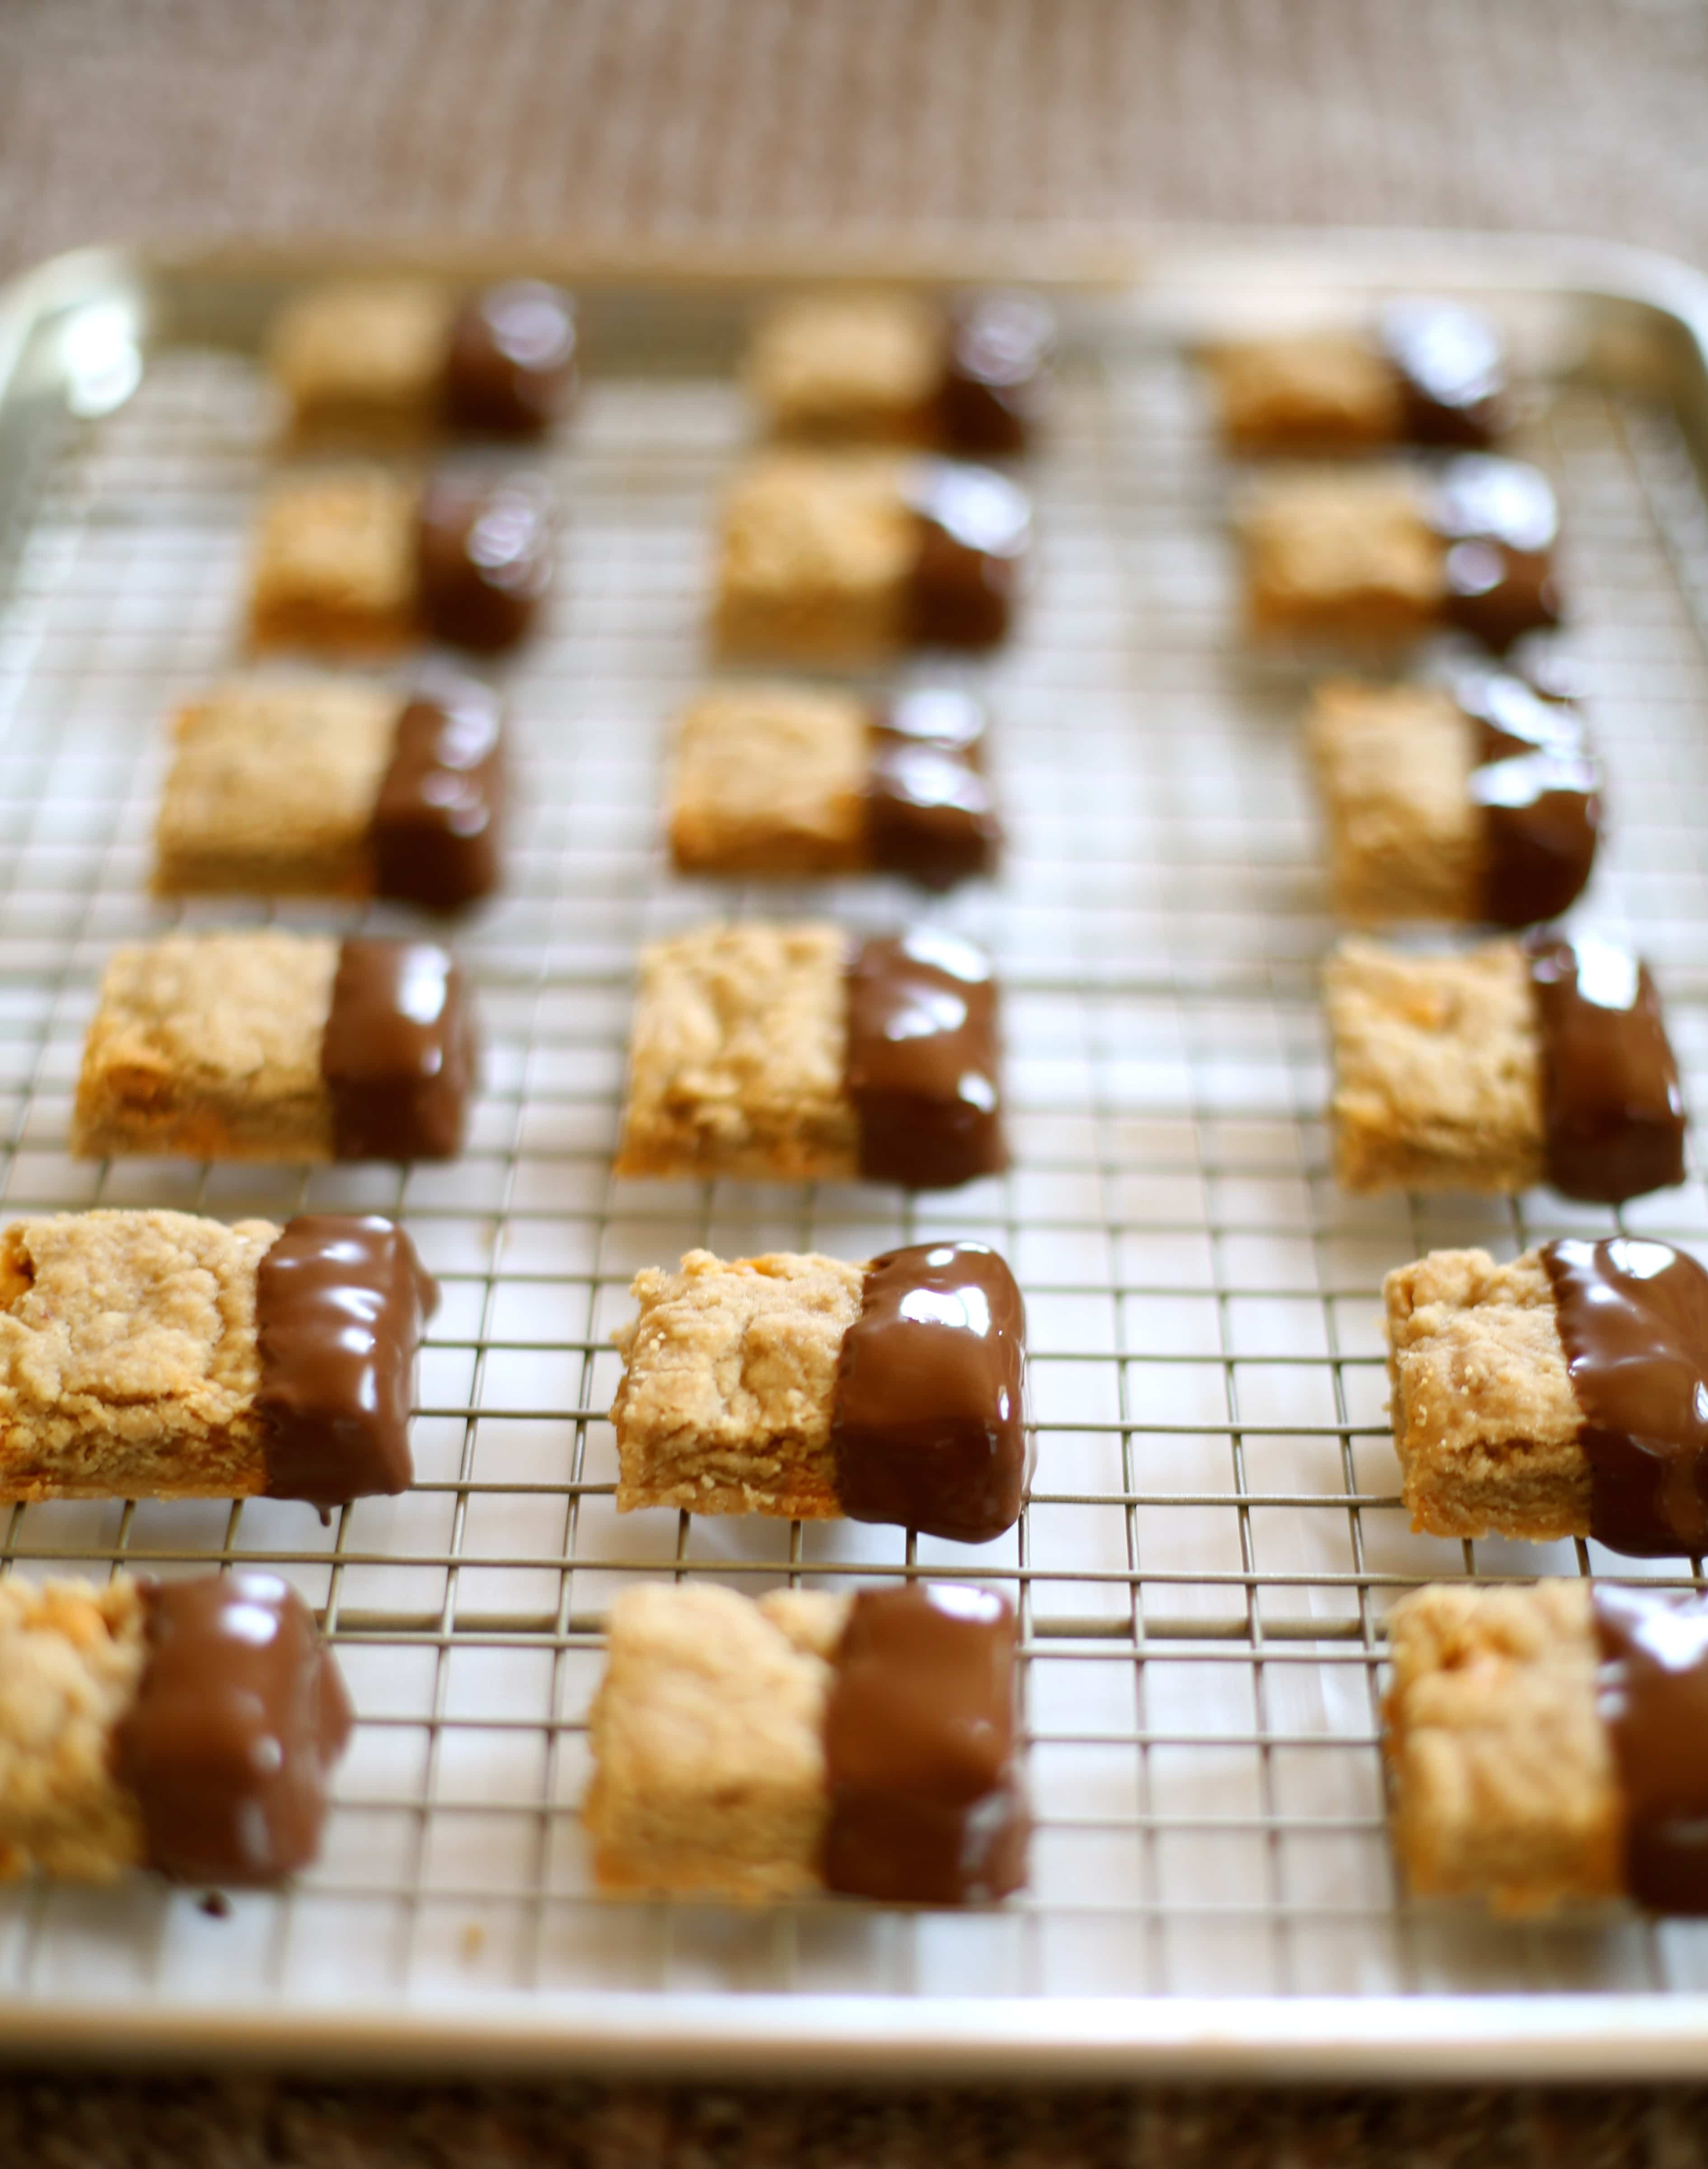 Shortbread cookies dipped in Chocolate on a cooling rack